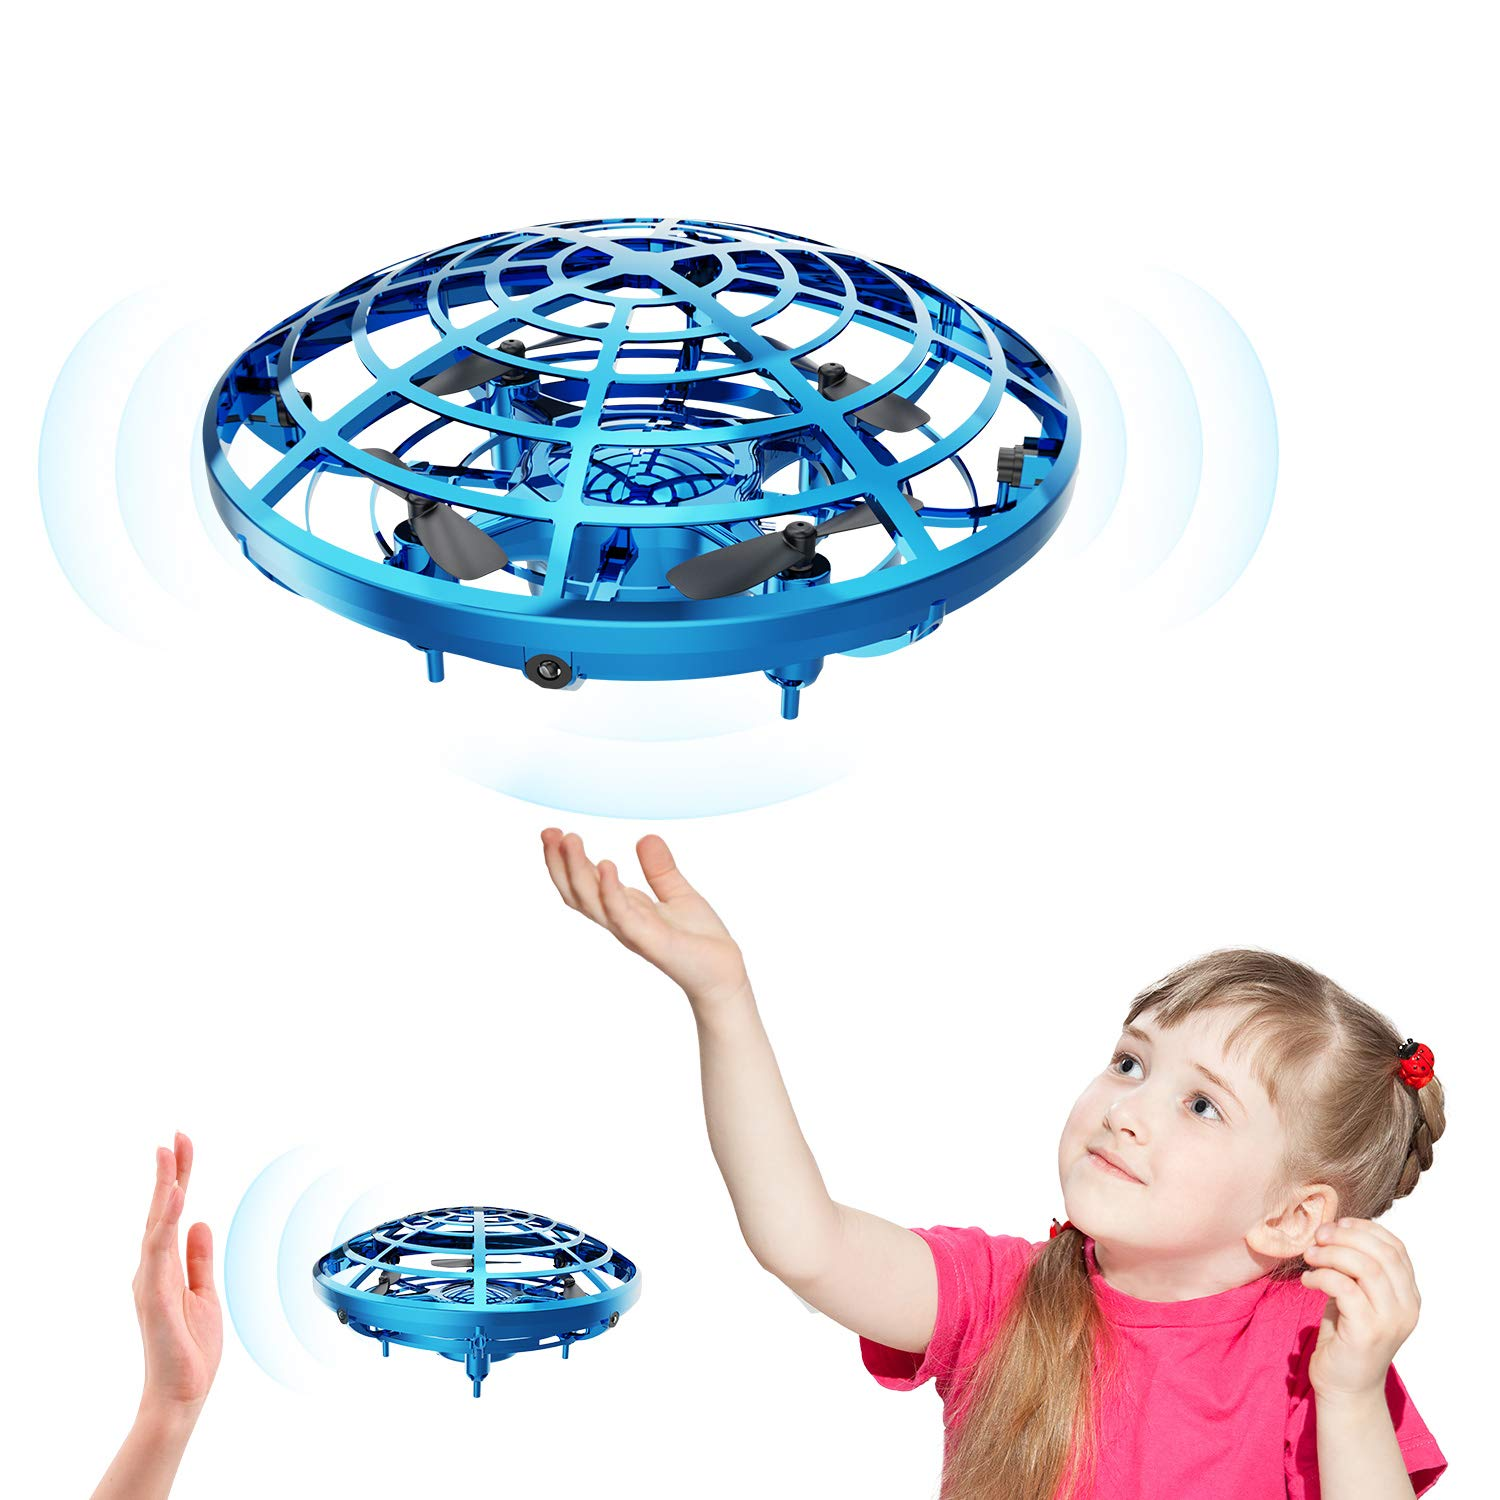 DEERC Drone for Kids Toys Hand Operated Mini Drone - Flying Ball Toy Gifts for Boys and Girls Motion Sensor Helicopter Outdoor and Indoor by DEERC